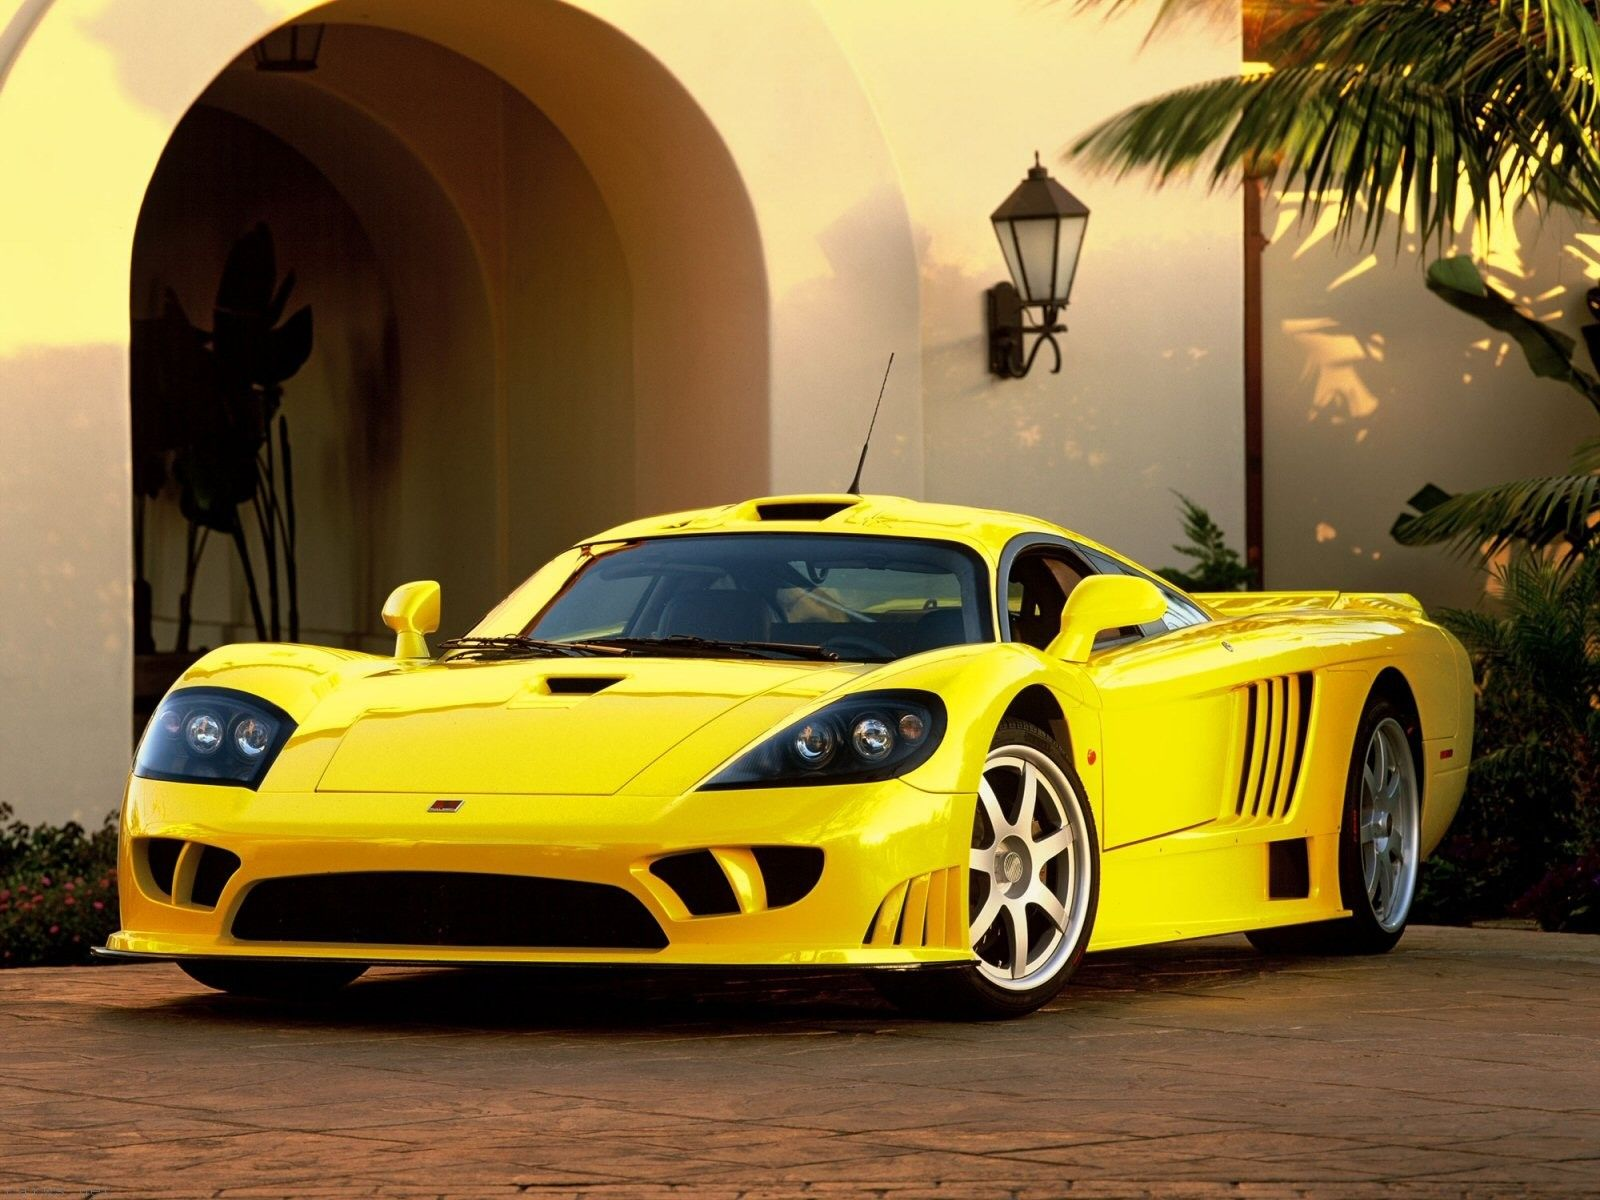 Yellow Cars Vehicles Saleen S7 Yellow Cars With Images